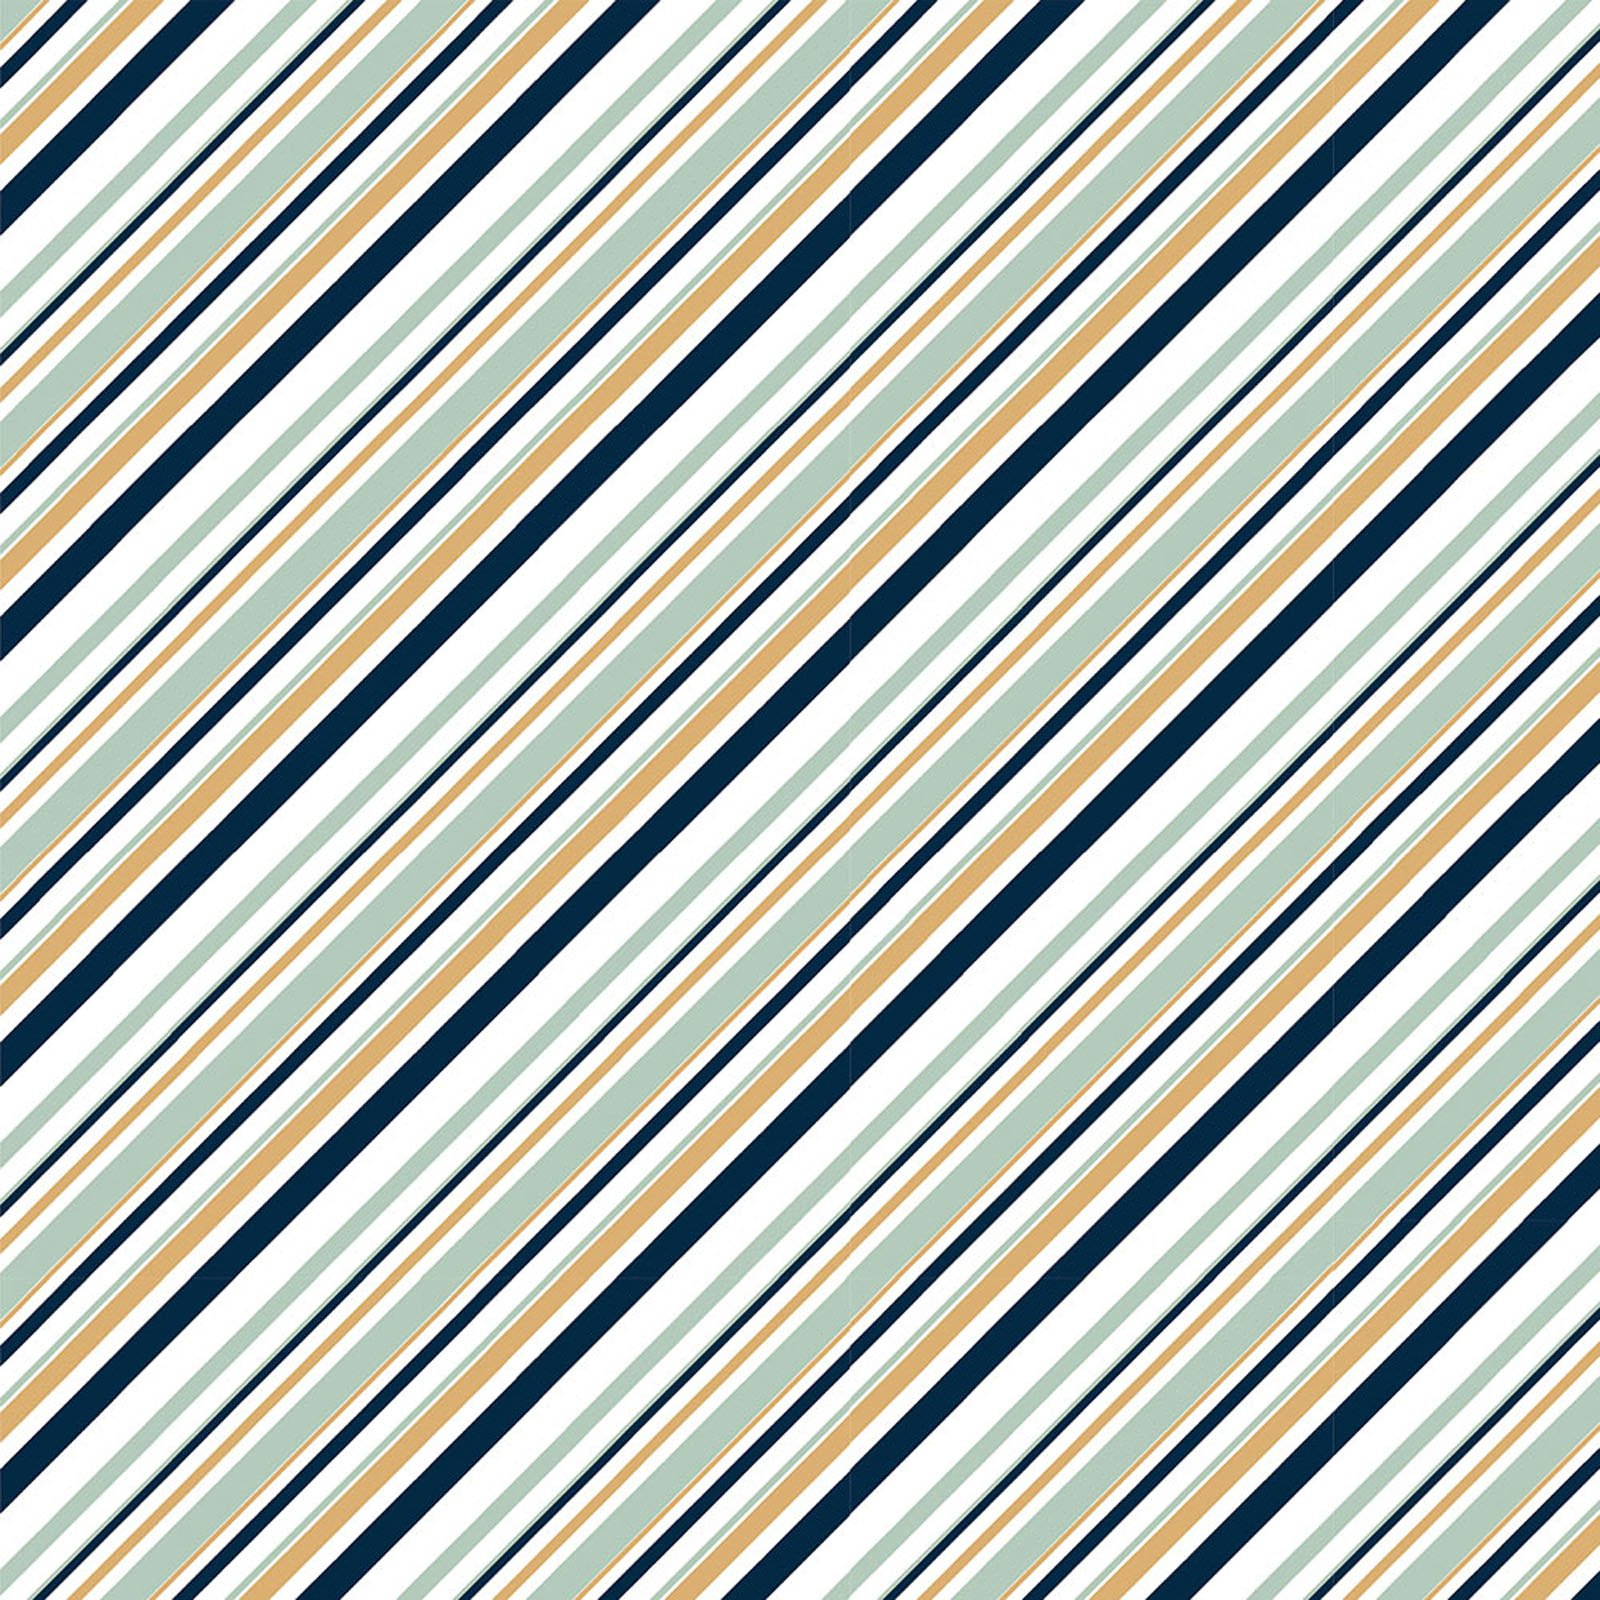 Mod Nouveau- Stripe- Mint- Jay-Cyn- Birch Fabrics- Organic Cotton